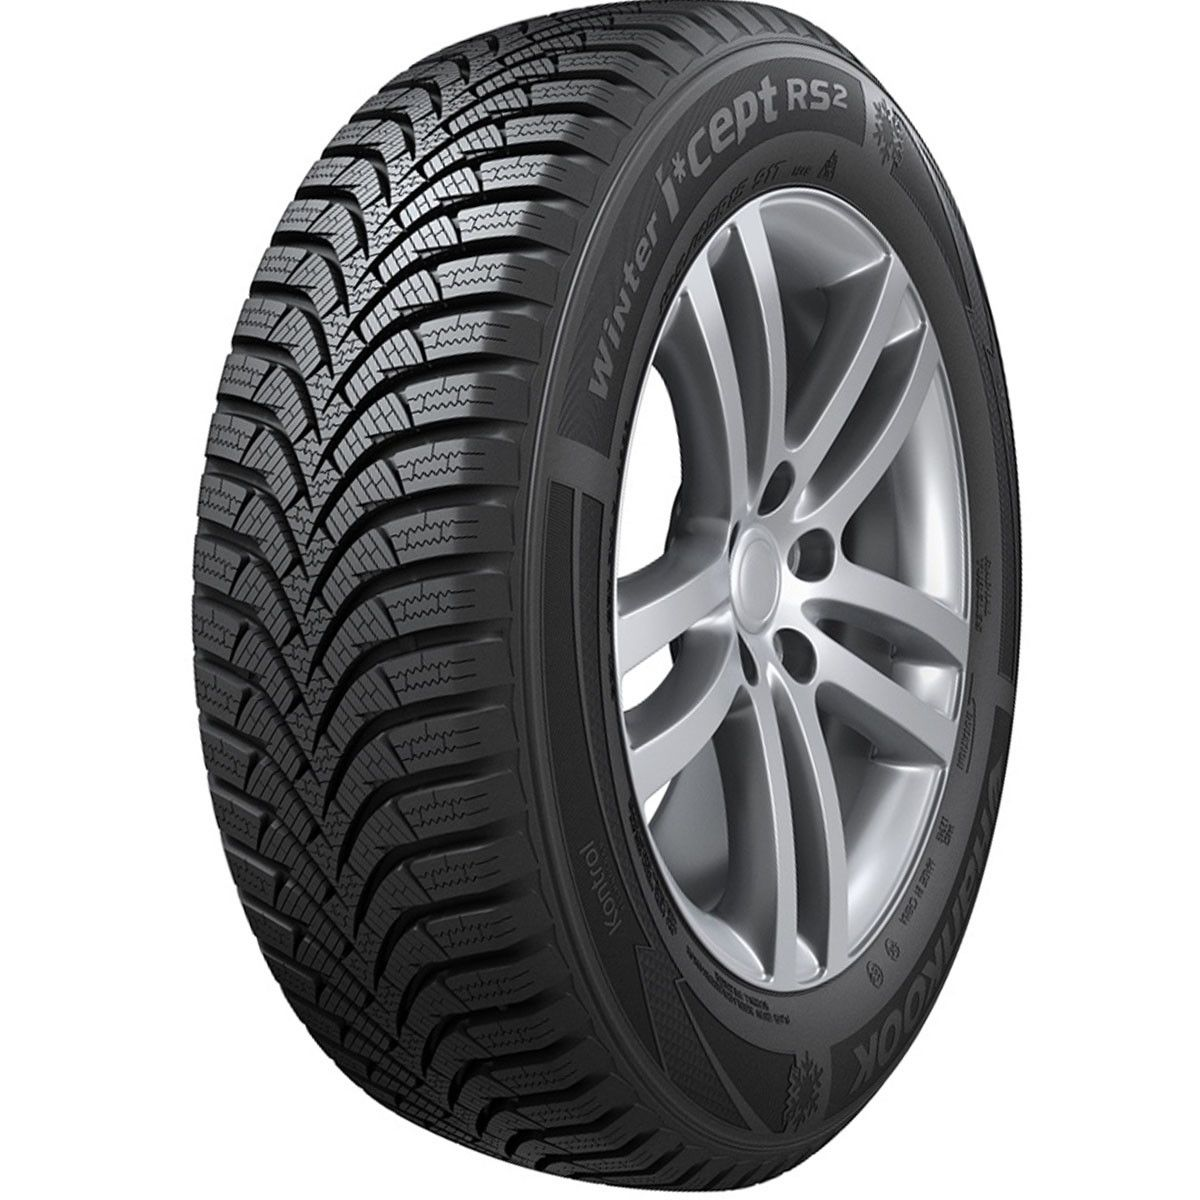 Anvelope Hankook W452 215/65R15 96H Iarna imagine